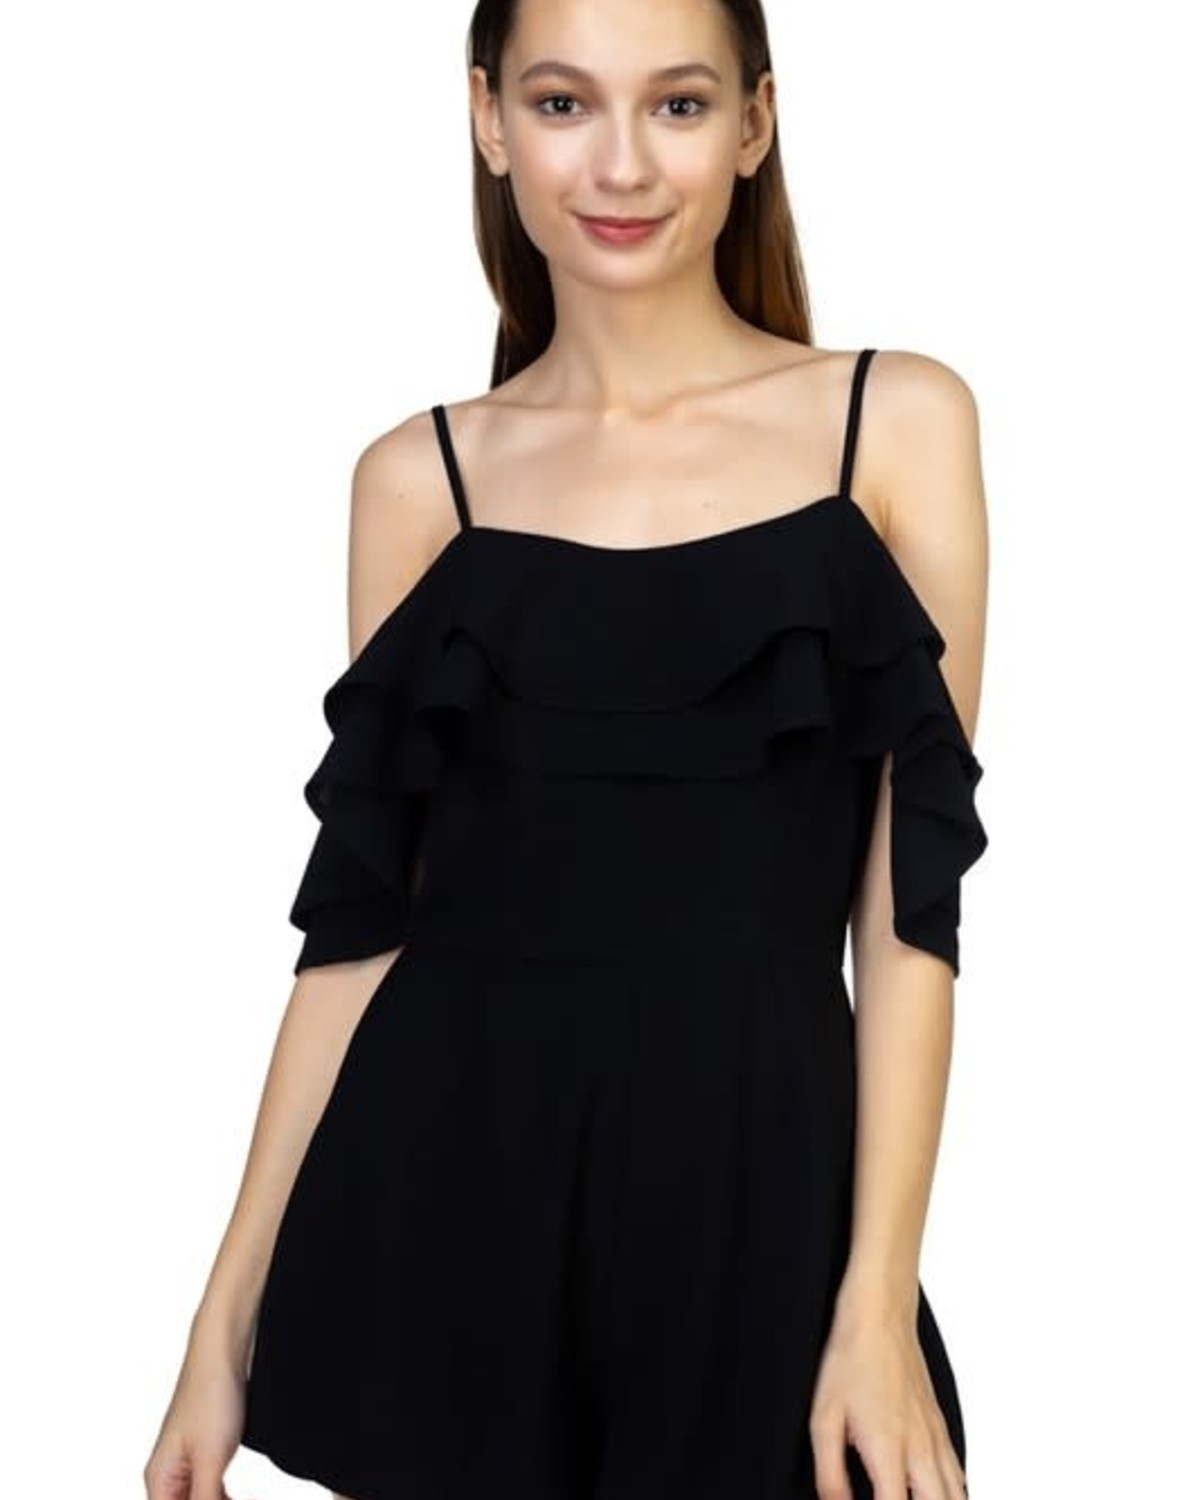 House Party Ruffle Romper